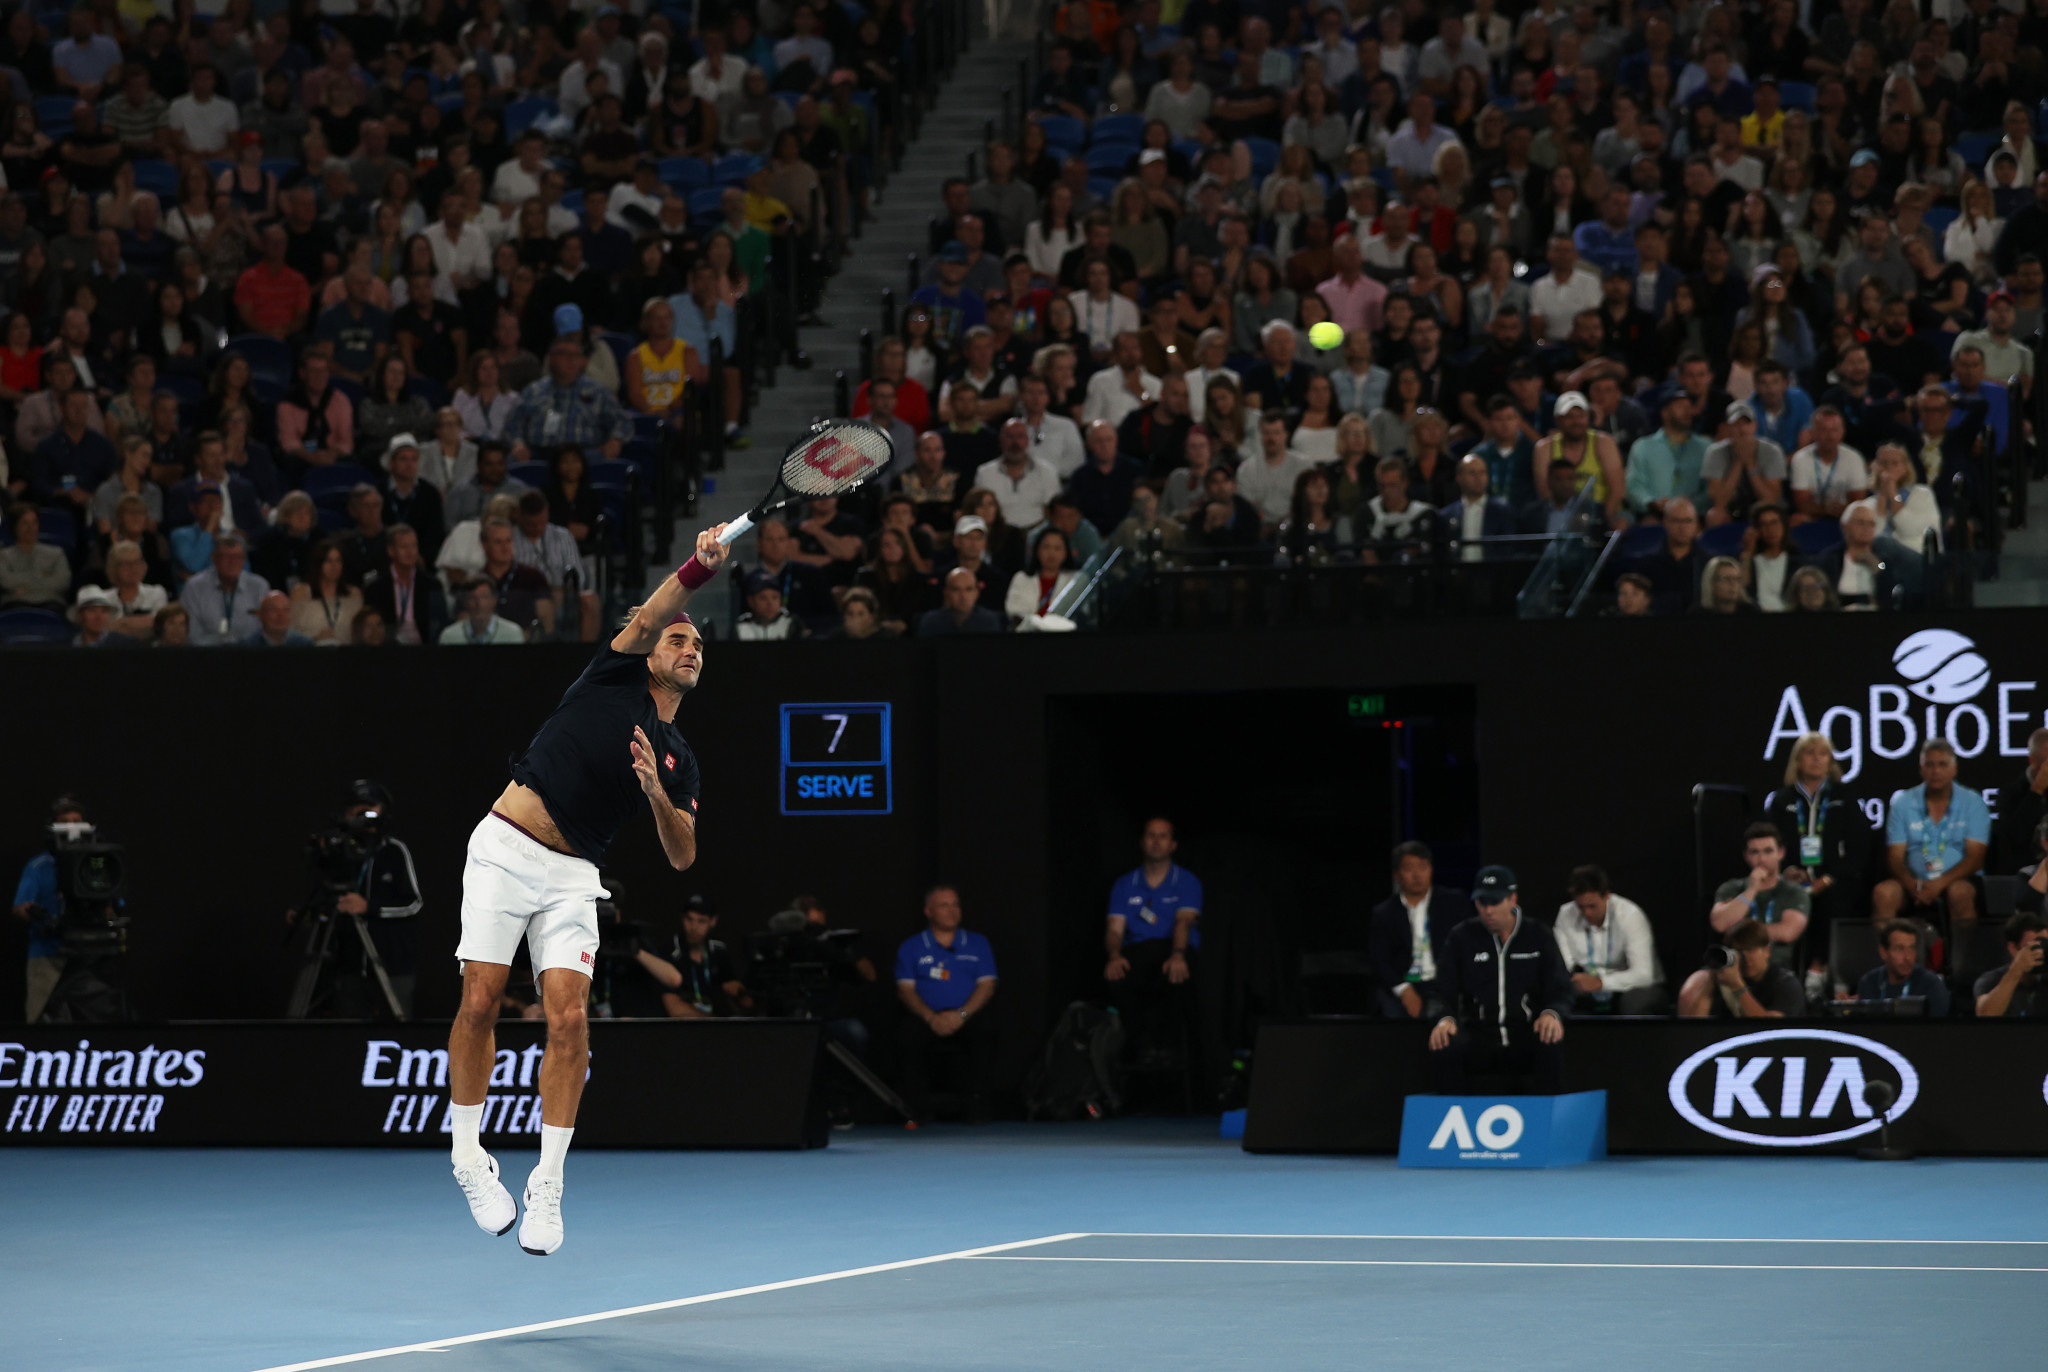 It was a five-set thriller, however, with Federer just edging it 4-6, 7-6, 6-4, 4-6, 7-6 ©Getty Images